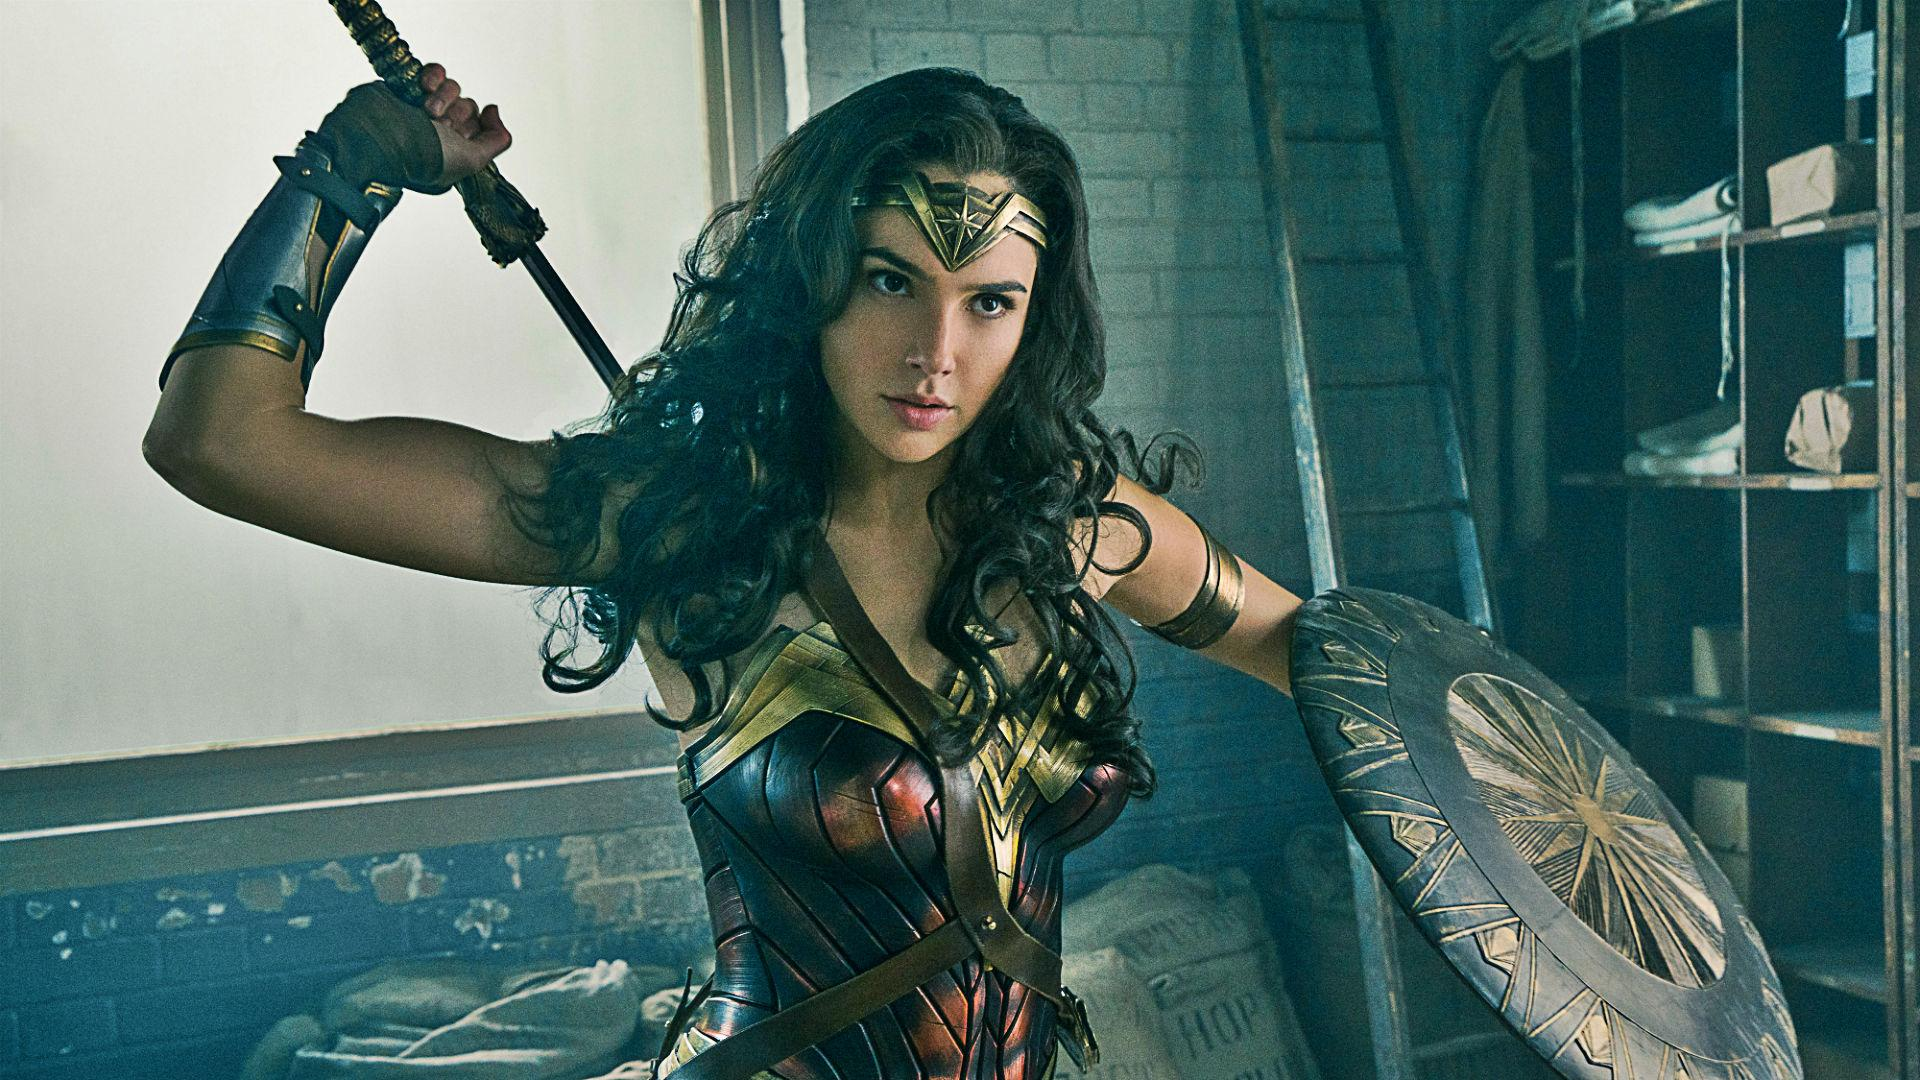 Diana Saves Steve Trevor From An Otherwise Fatal Bullet In A Fresh Clip For Wonder Woman Youve Seen Glimpses Of The Before Which Made Scene Look